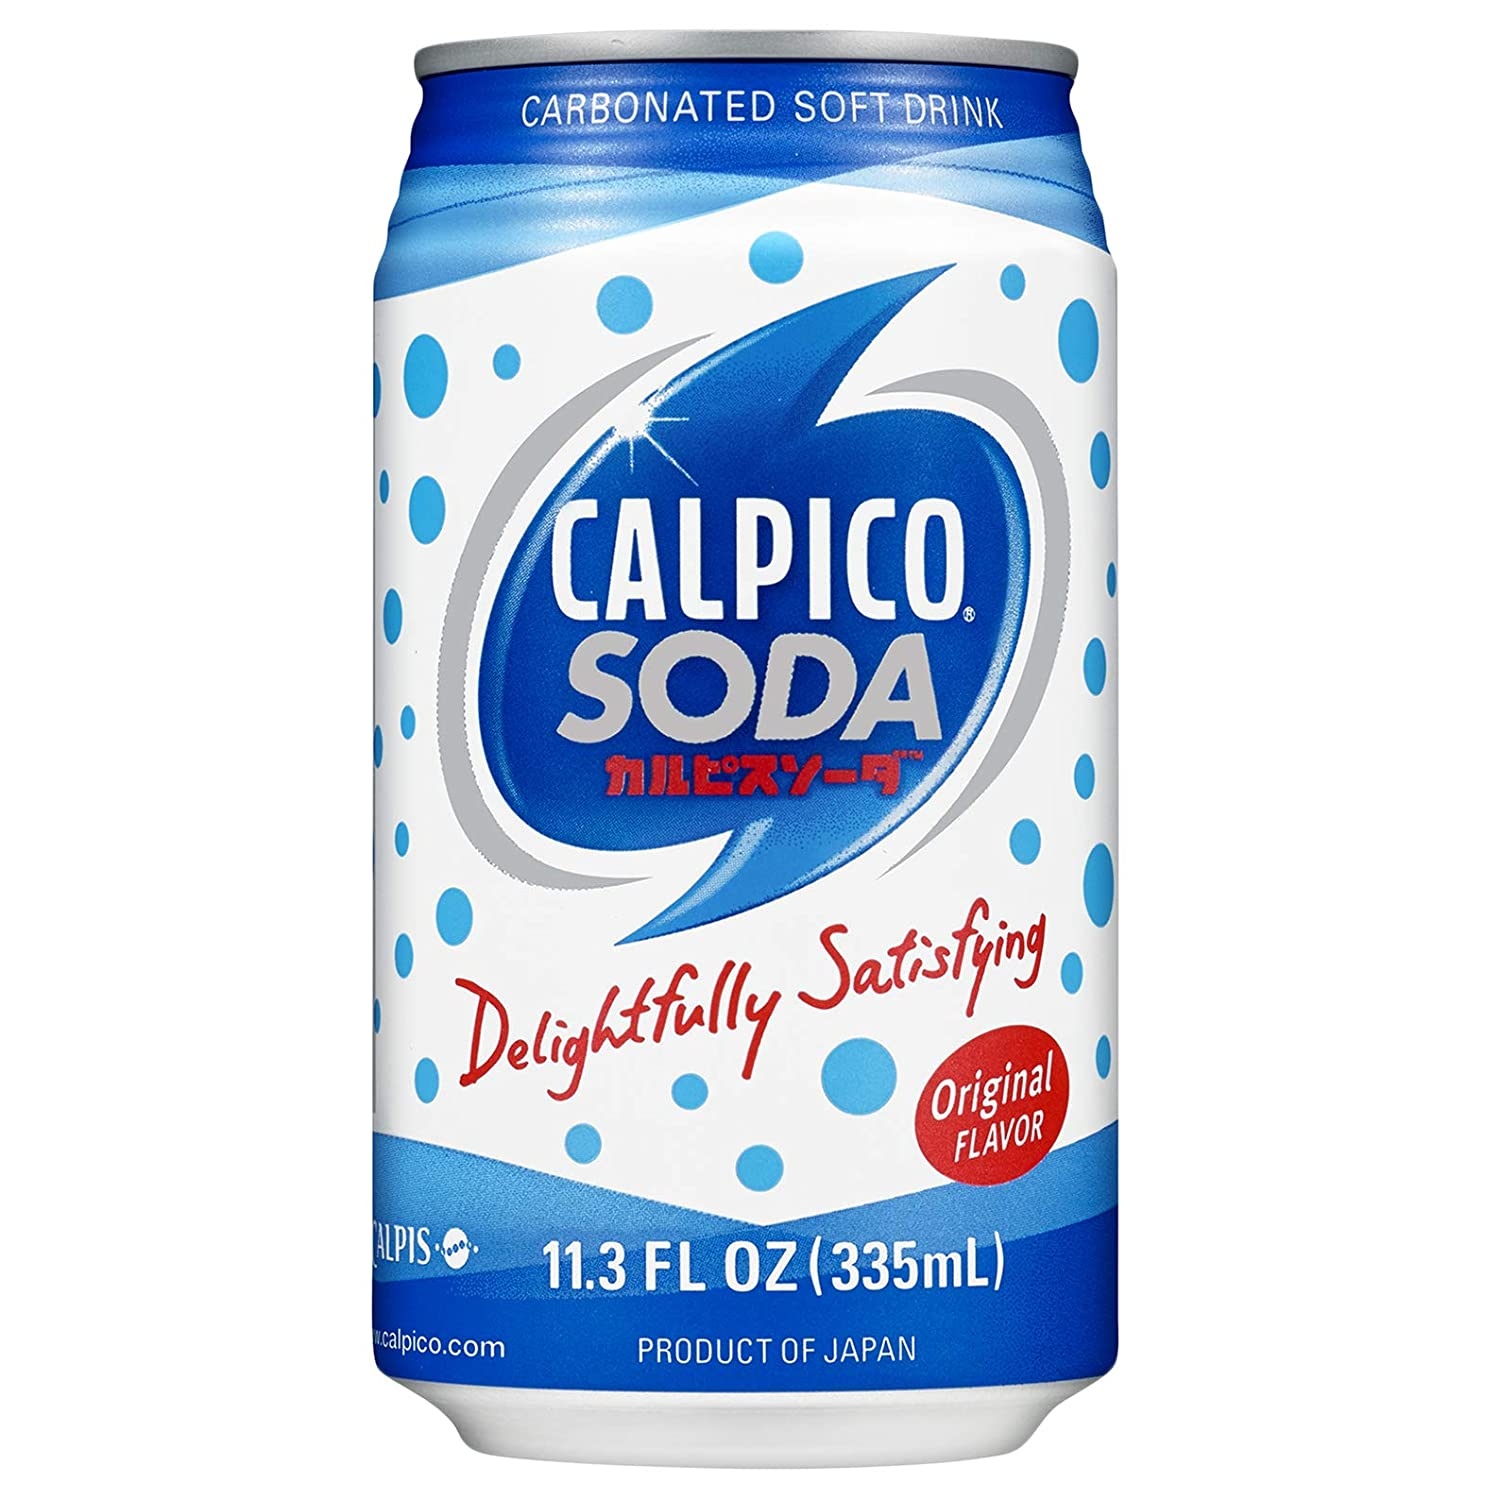 CALPICO SODA, Carbonated Soft Drink, Hint of Citrus Flavor, Japanese Soda, Made With CALPICO and Carbonated Water, 11.3oz Can (Pack of 24)